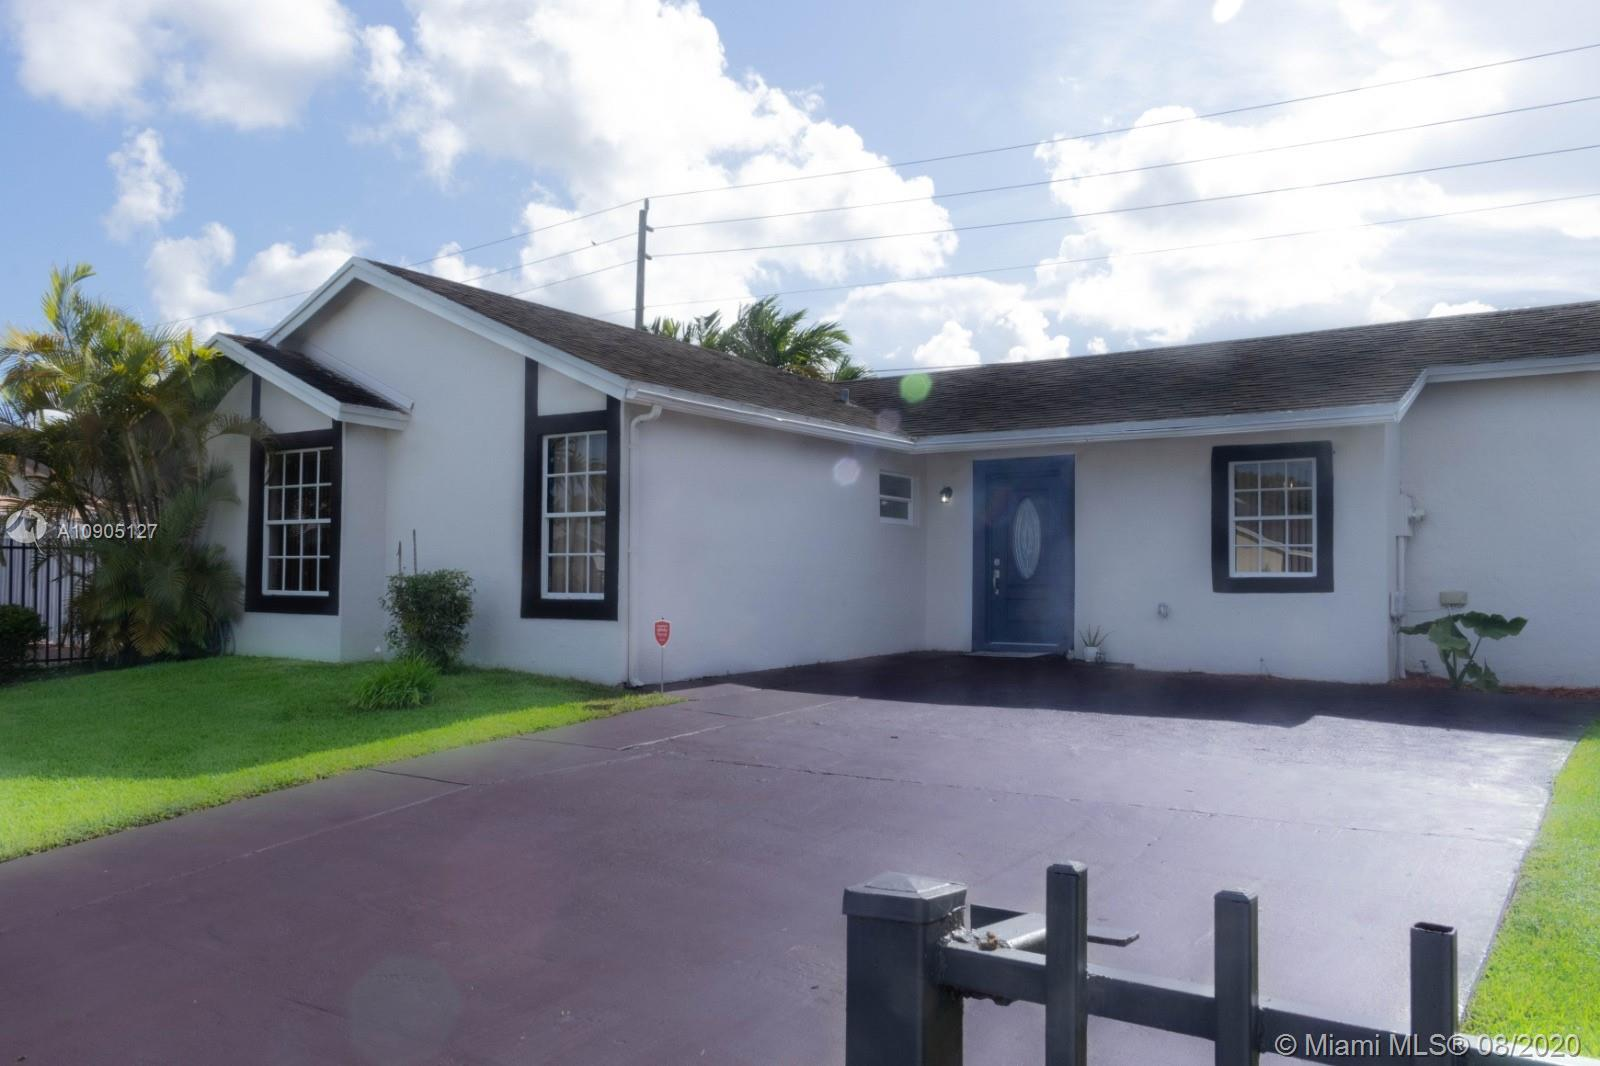 Welcome home to a family friendly conveniently located neighborhood. enjoy this ready to move 3/2 with a private patio to spend time outdoor.